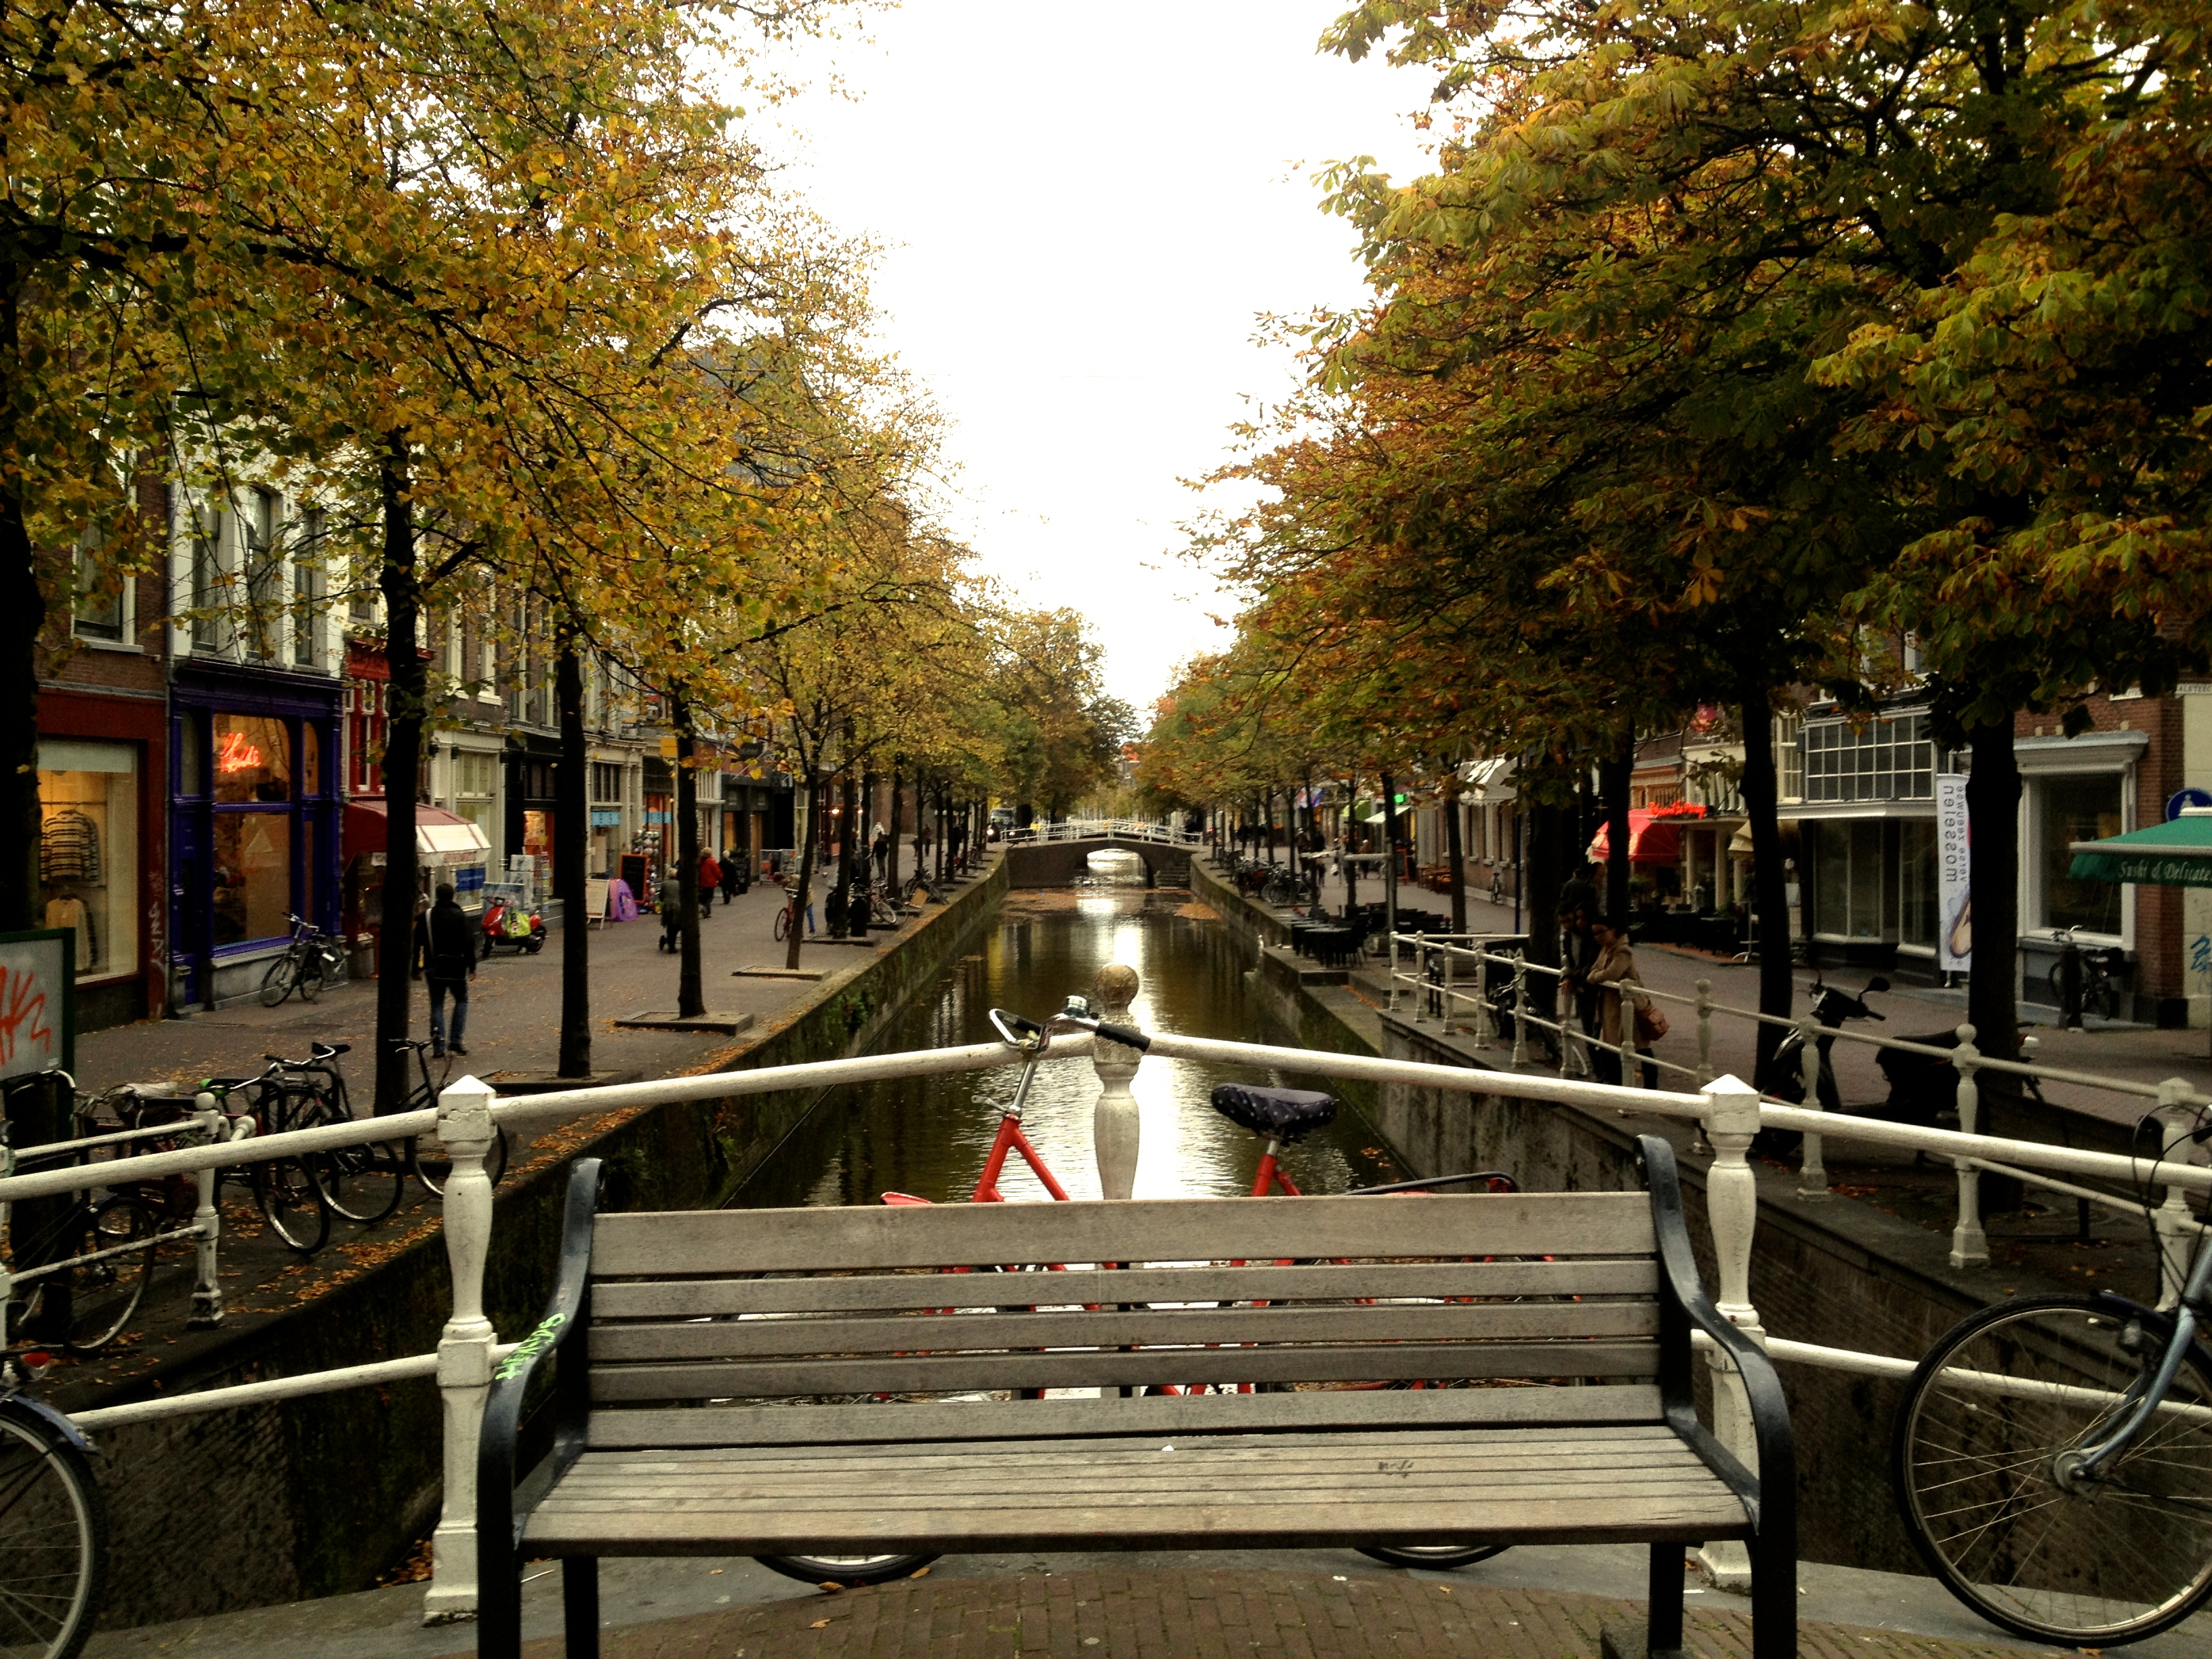 Discovering Delft Through The Eyes Of Vermeer